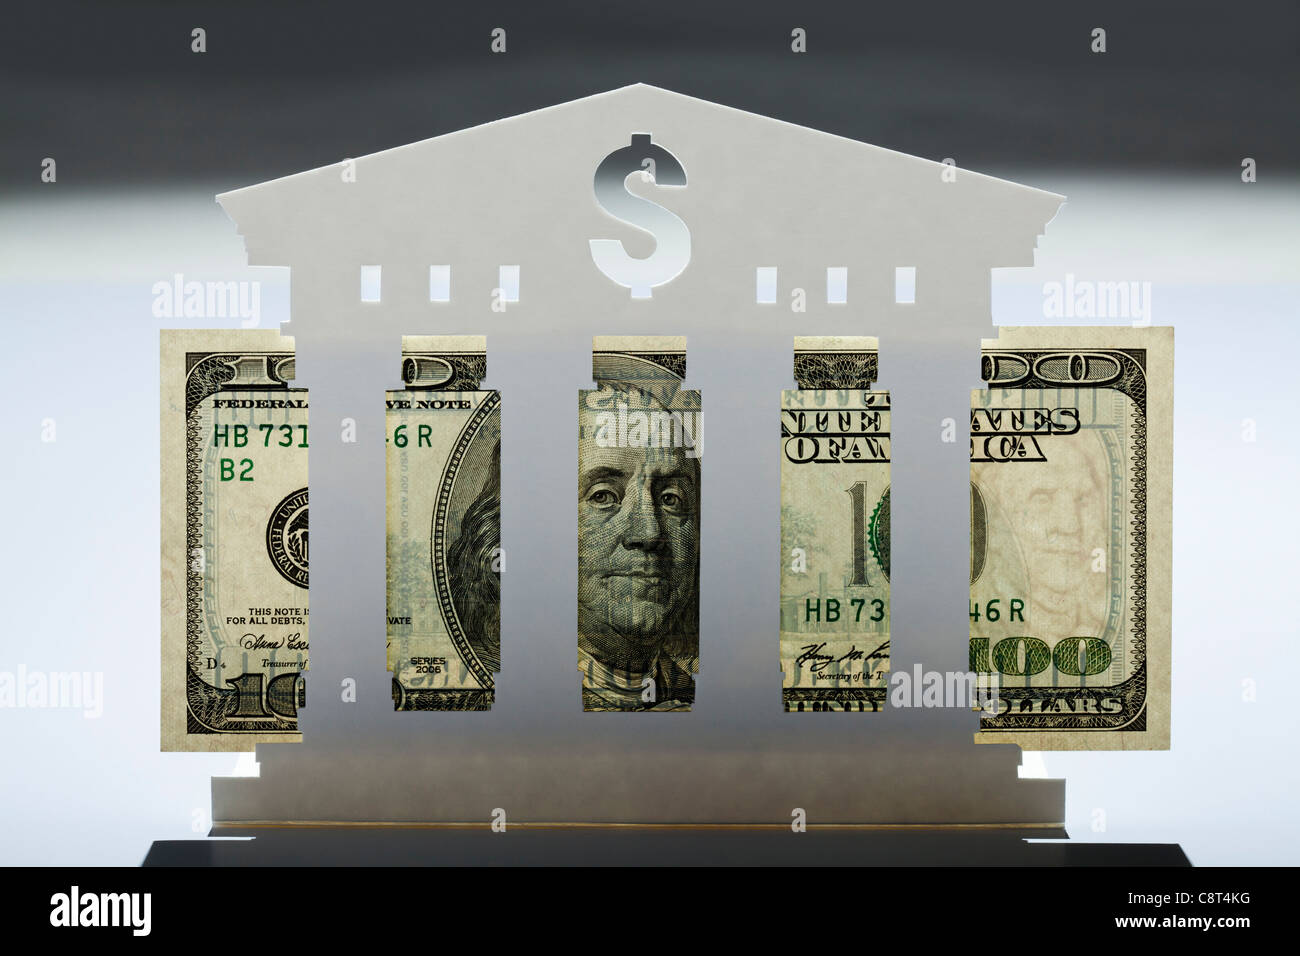 Model of bank with one hundred dollar bill in it - Stock Image